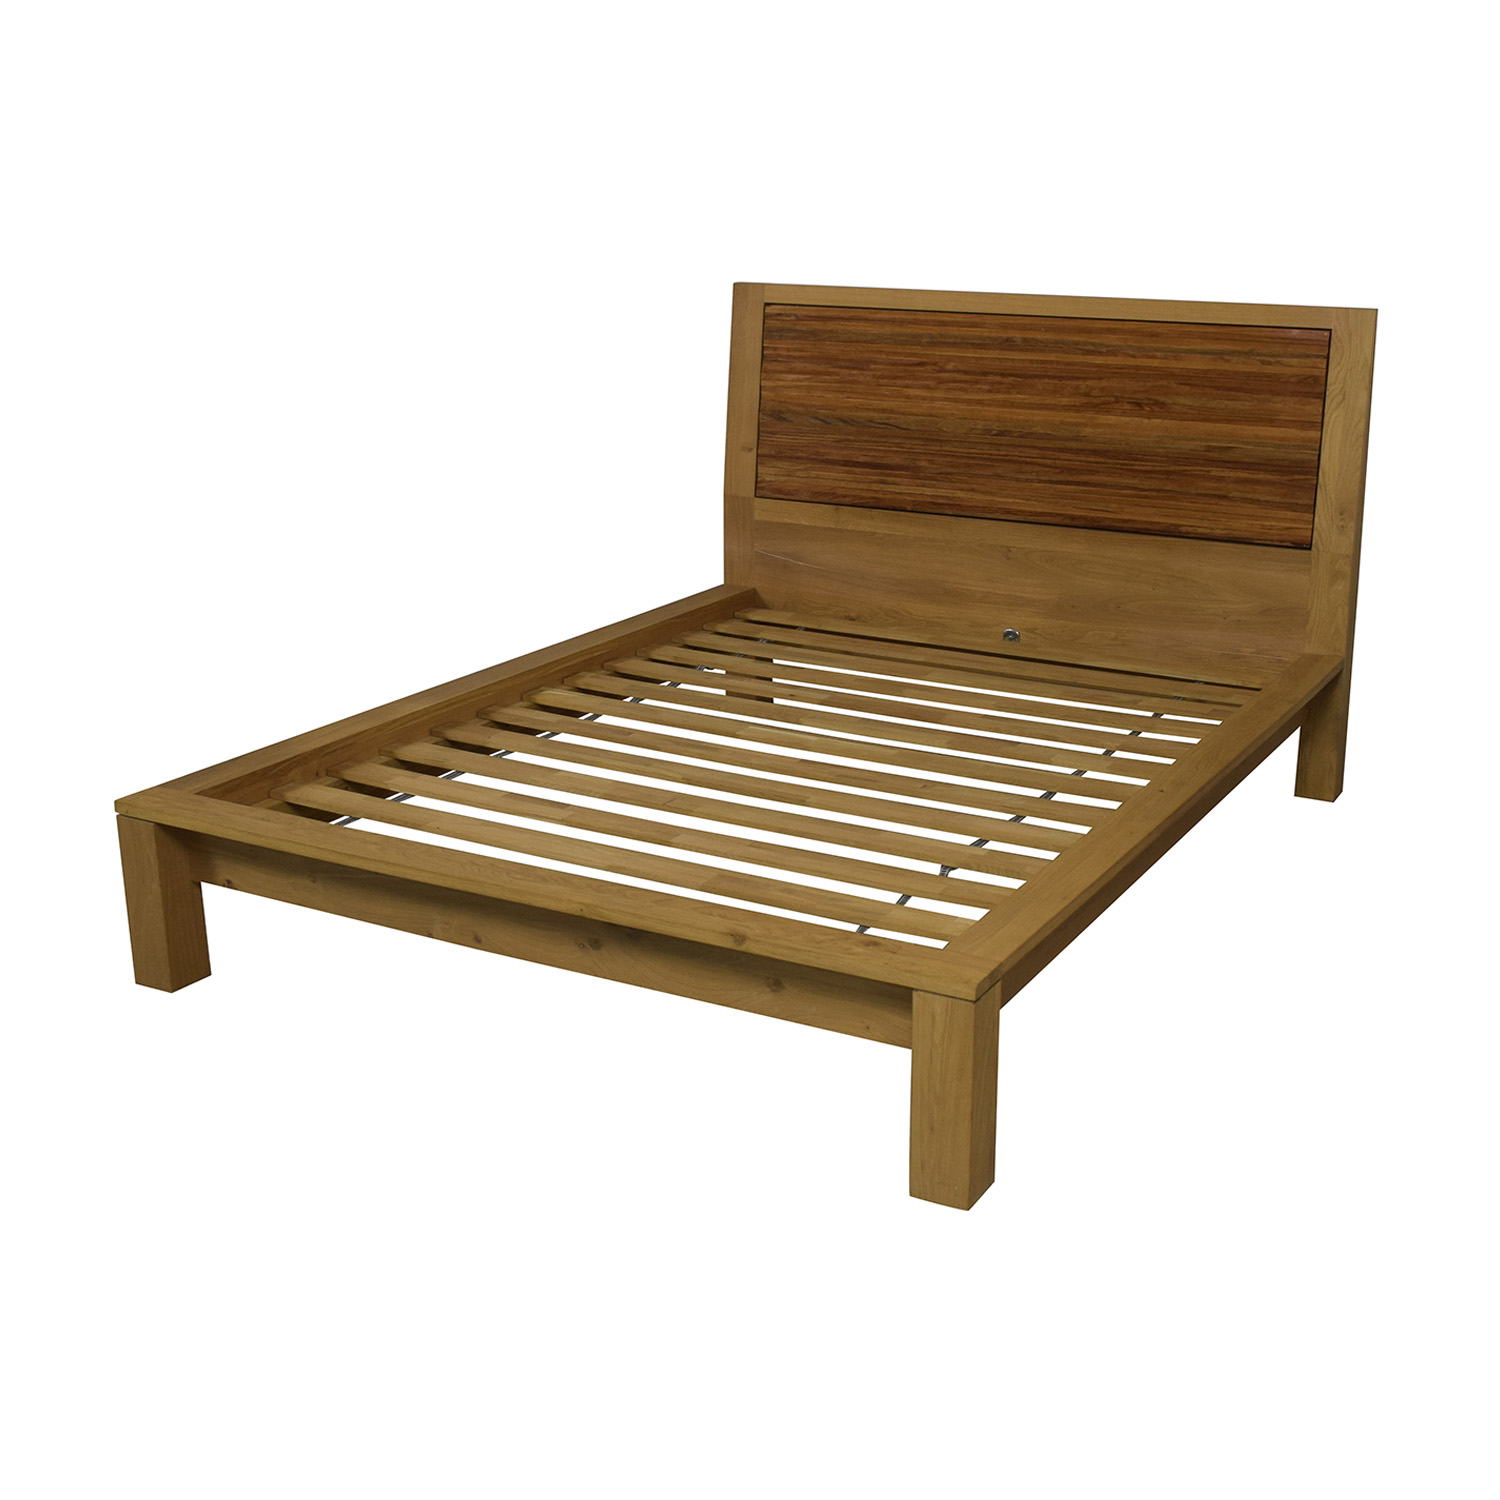 Crate & Barrel Queen Bed Frame sale